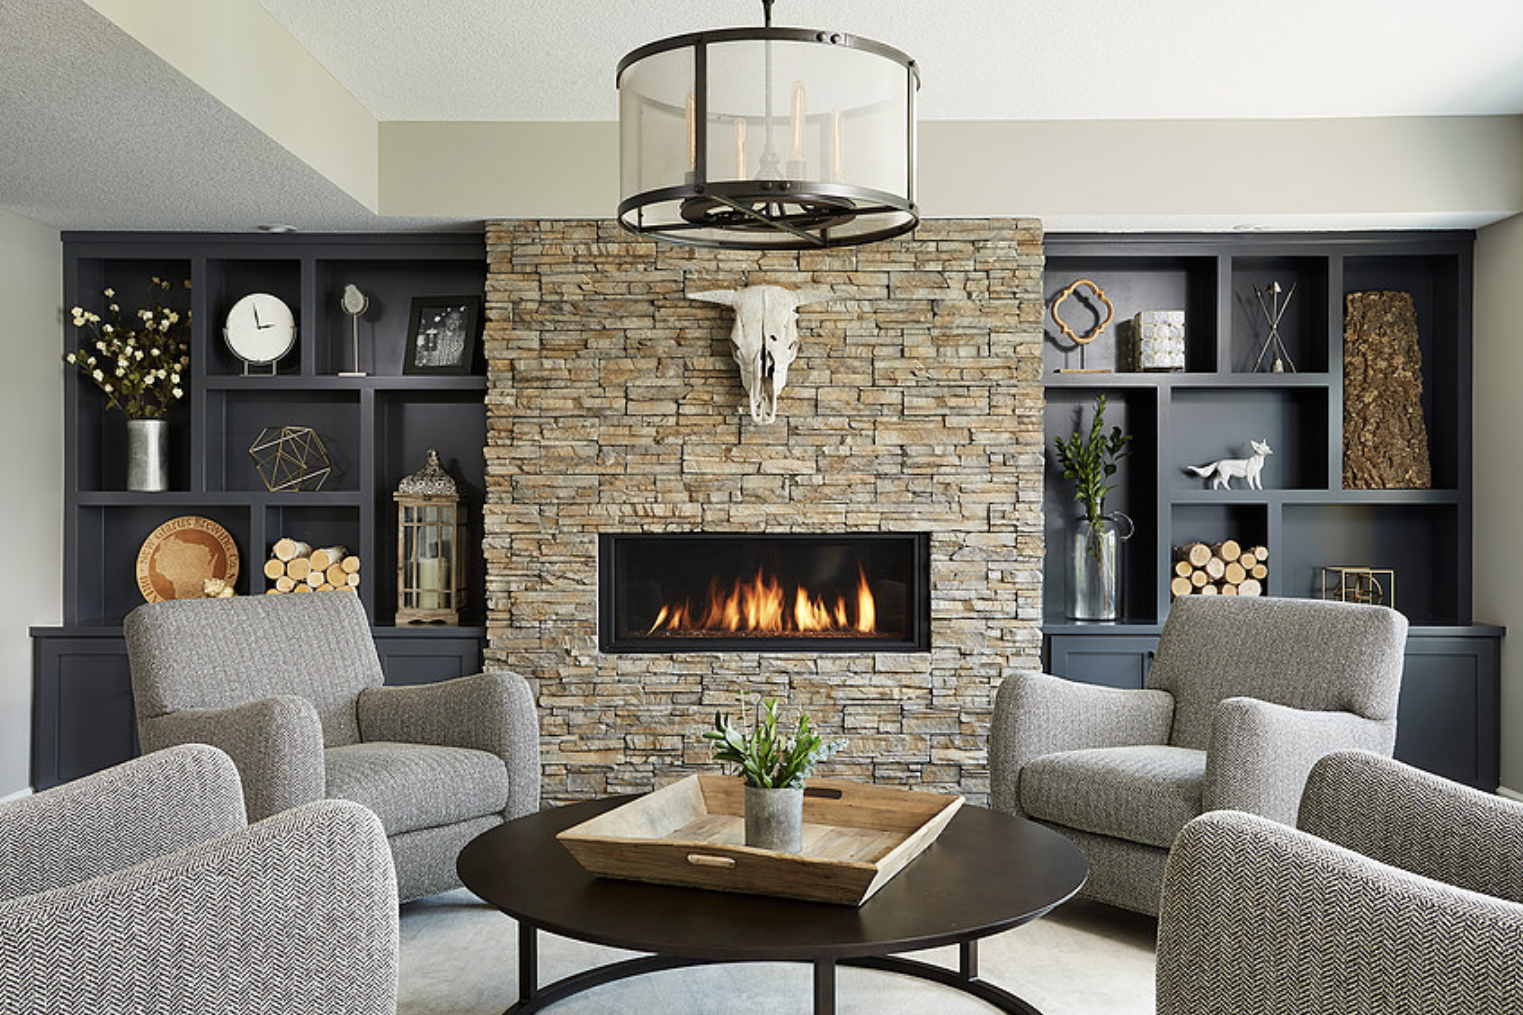 In this cozy basement, a fireplace feature wall takes center stage, filled with custom bookshelves that add architectural interest and sleek and high-quality armchairs that provide comfortable seating for guests.